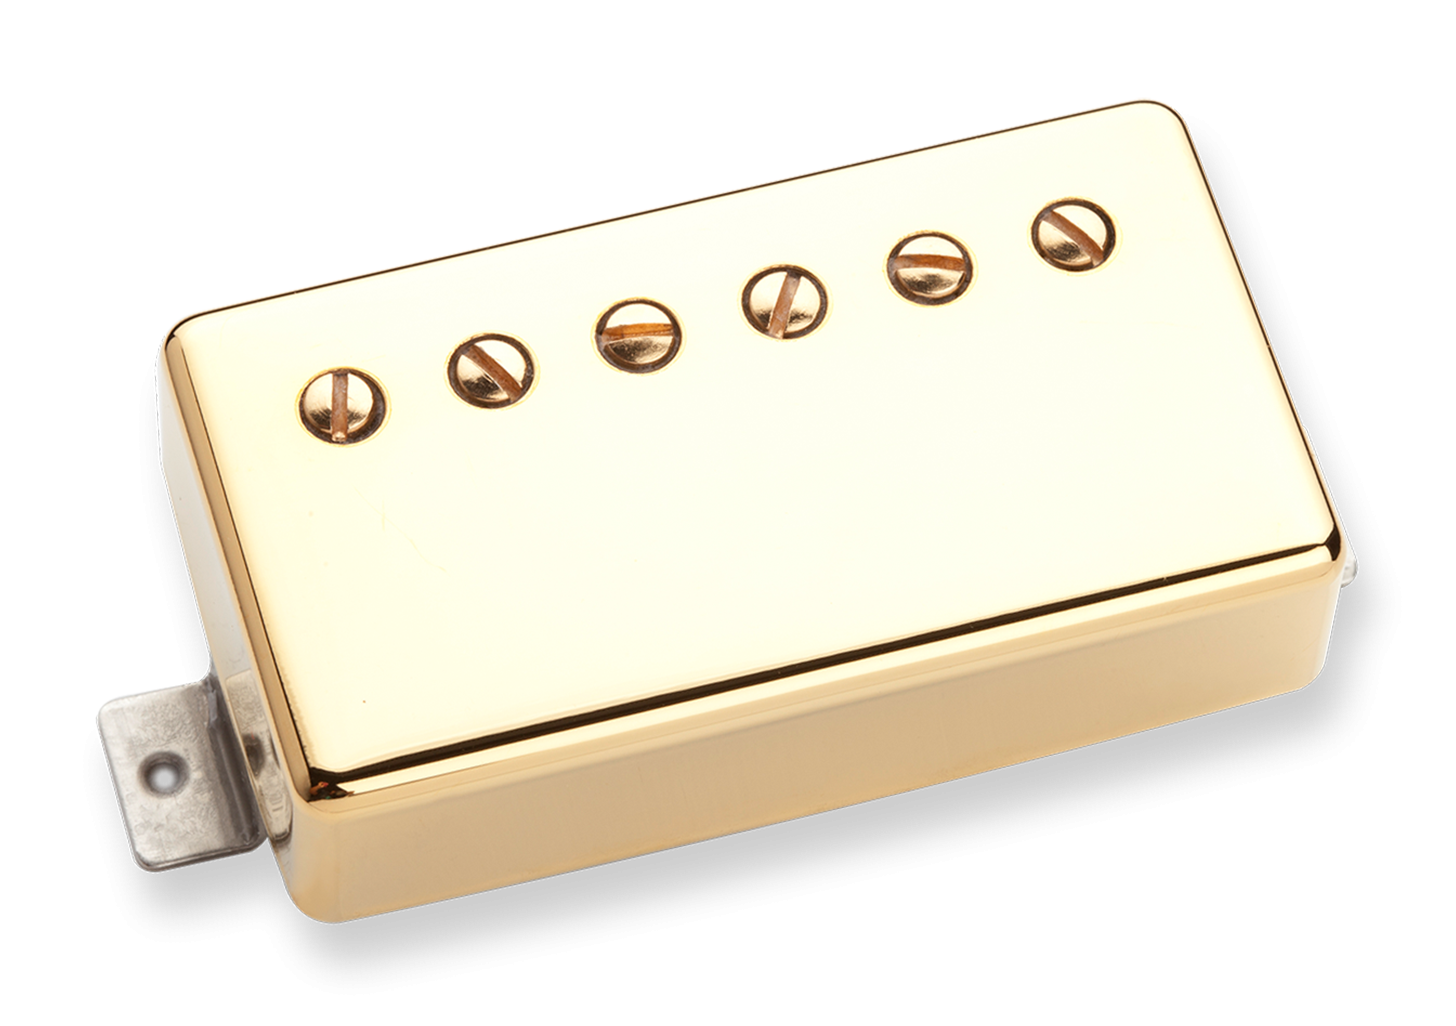 Seymour Duncan Duncan Distortion Humbucker - SH-6N Neck Gold